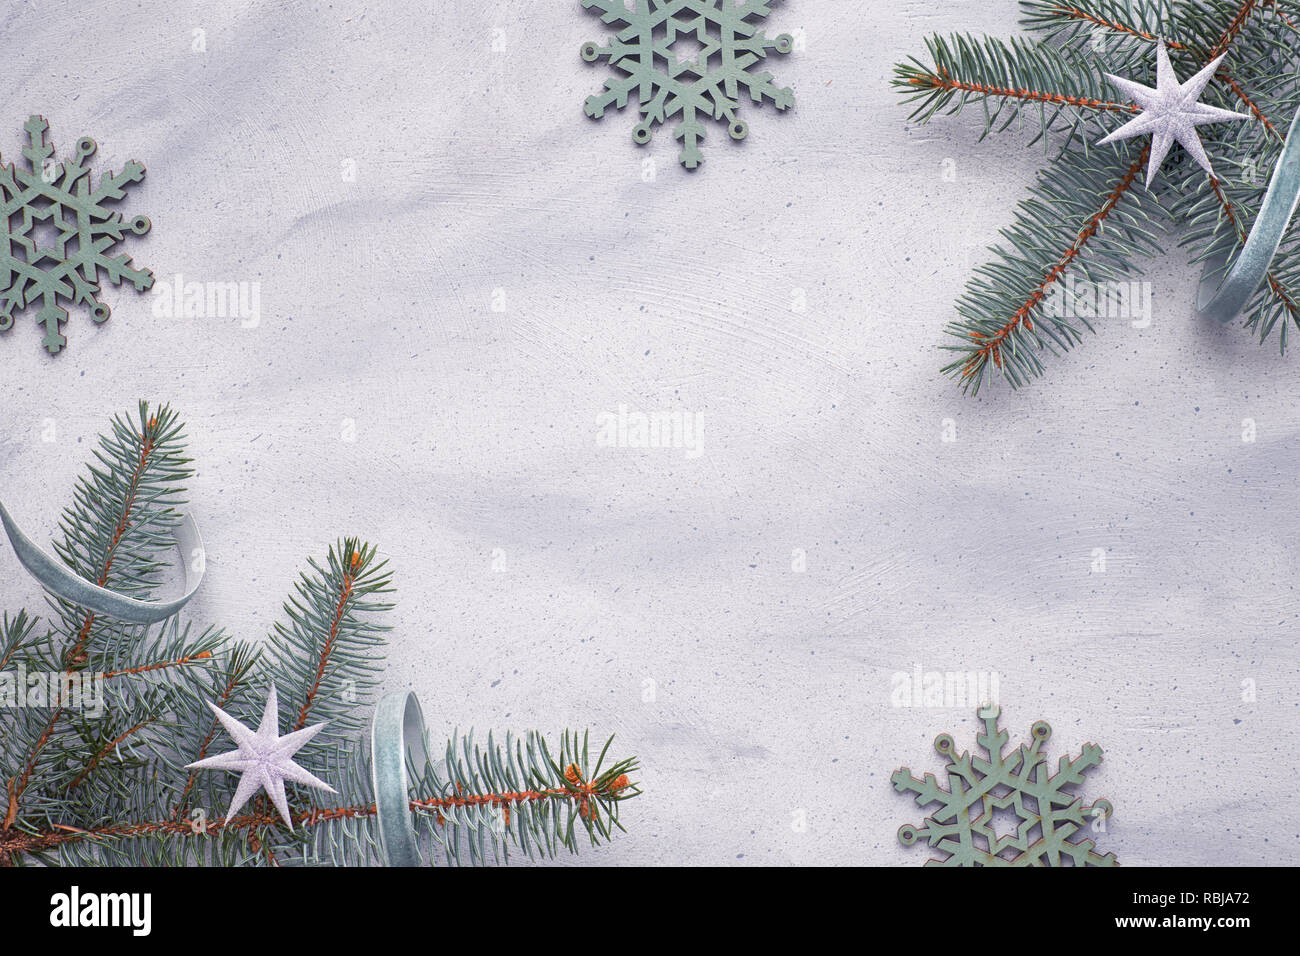 Light Christmas background inwhite and green with copy-space  Flat